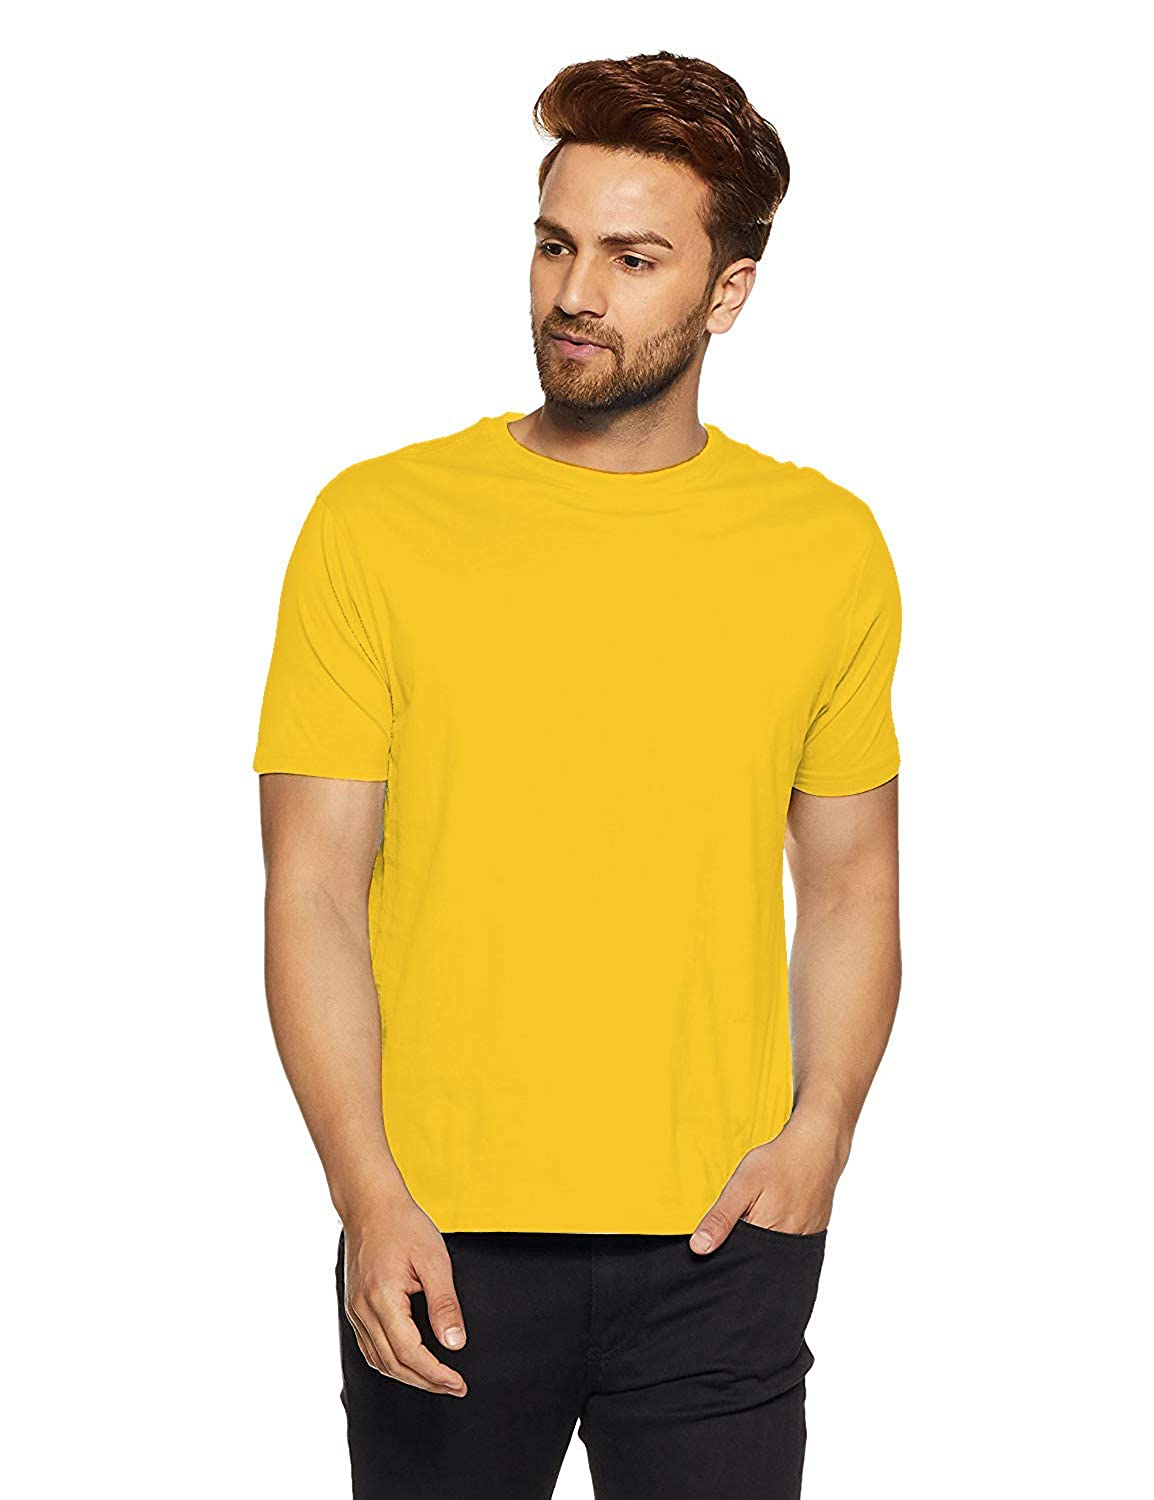 Top 10 T-Shirt Brands in India